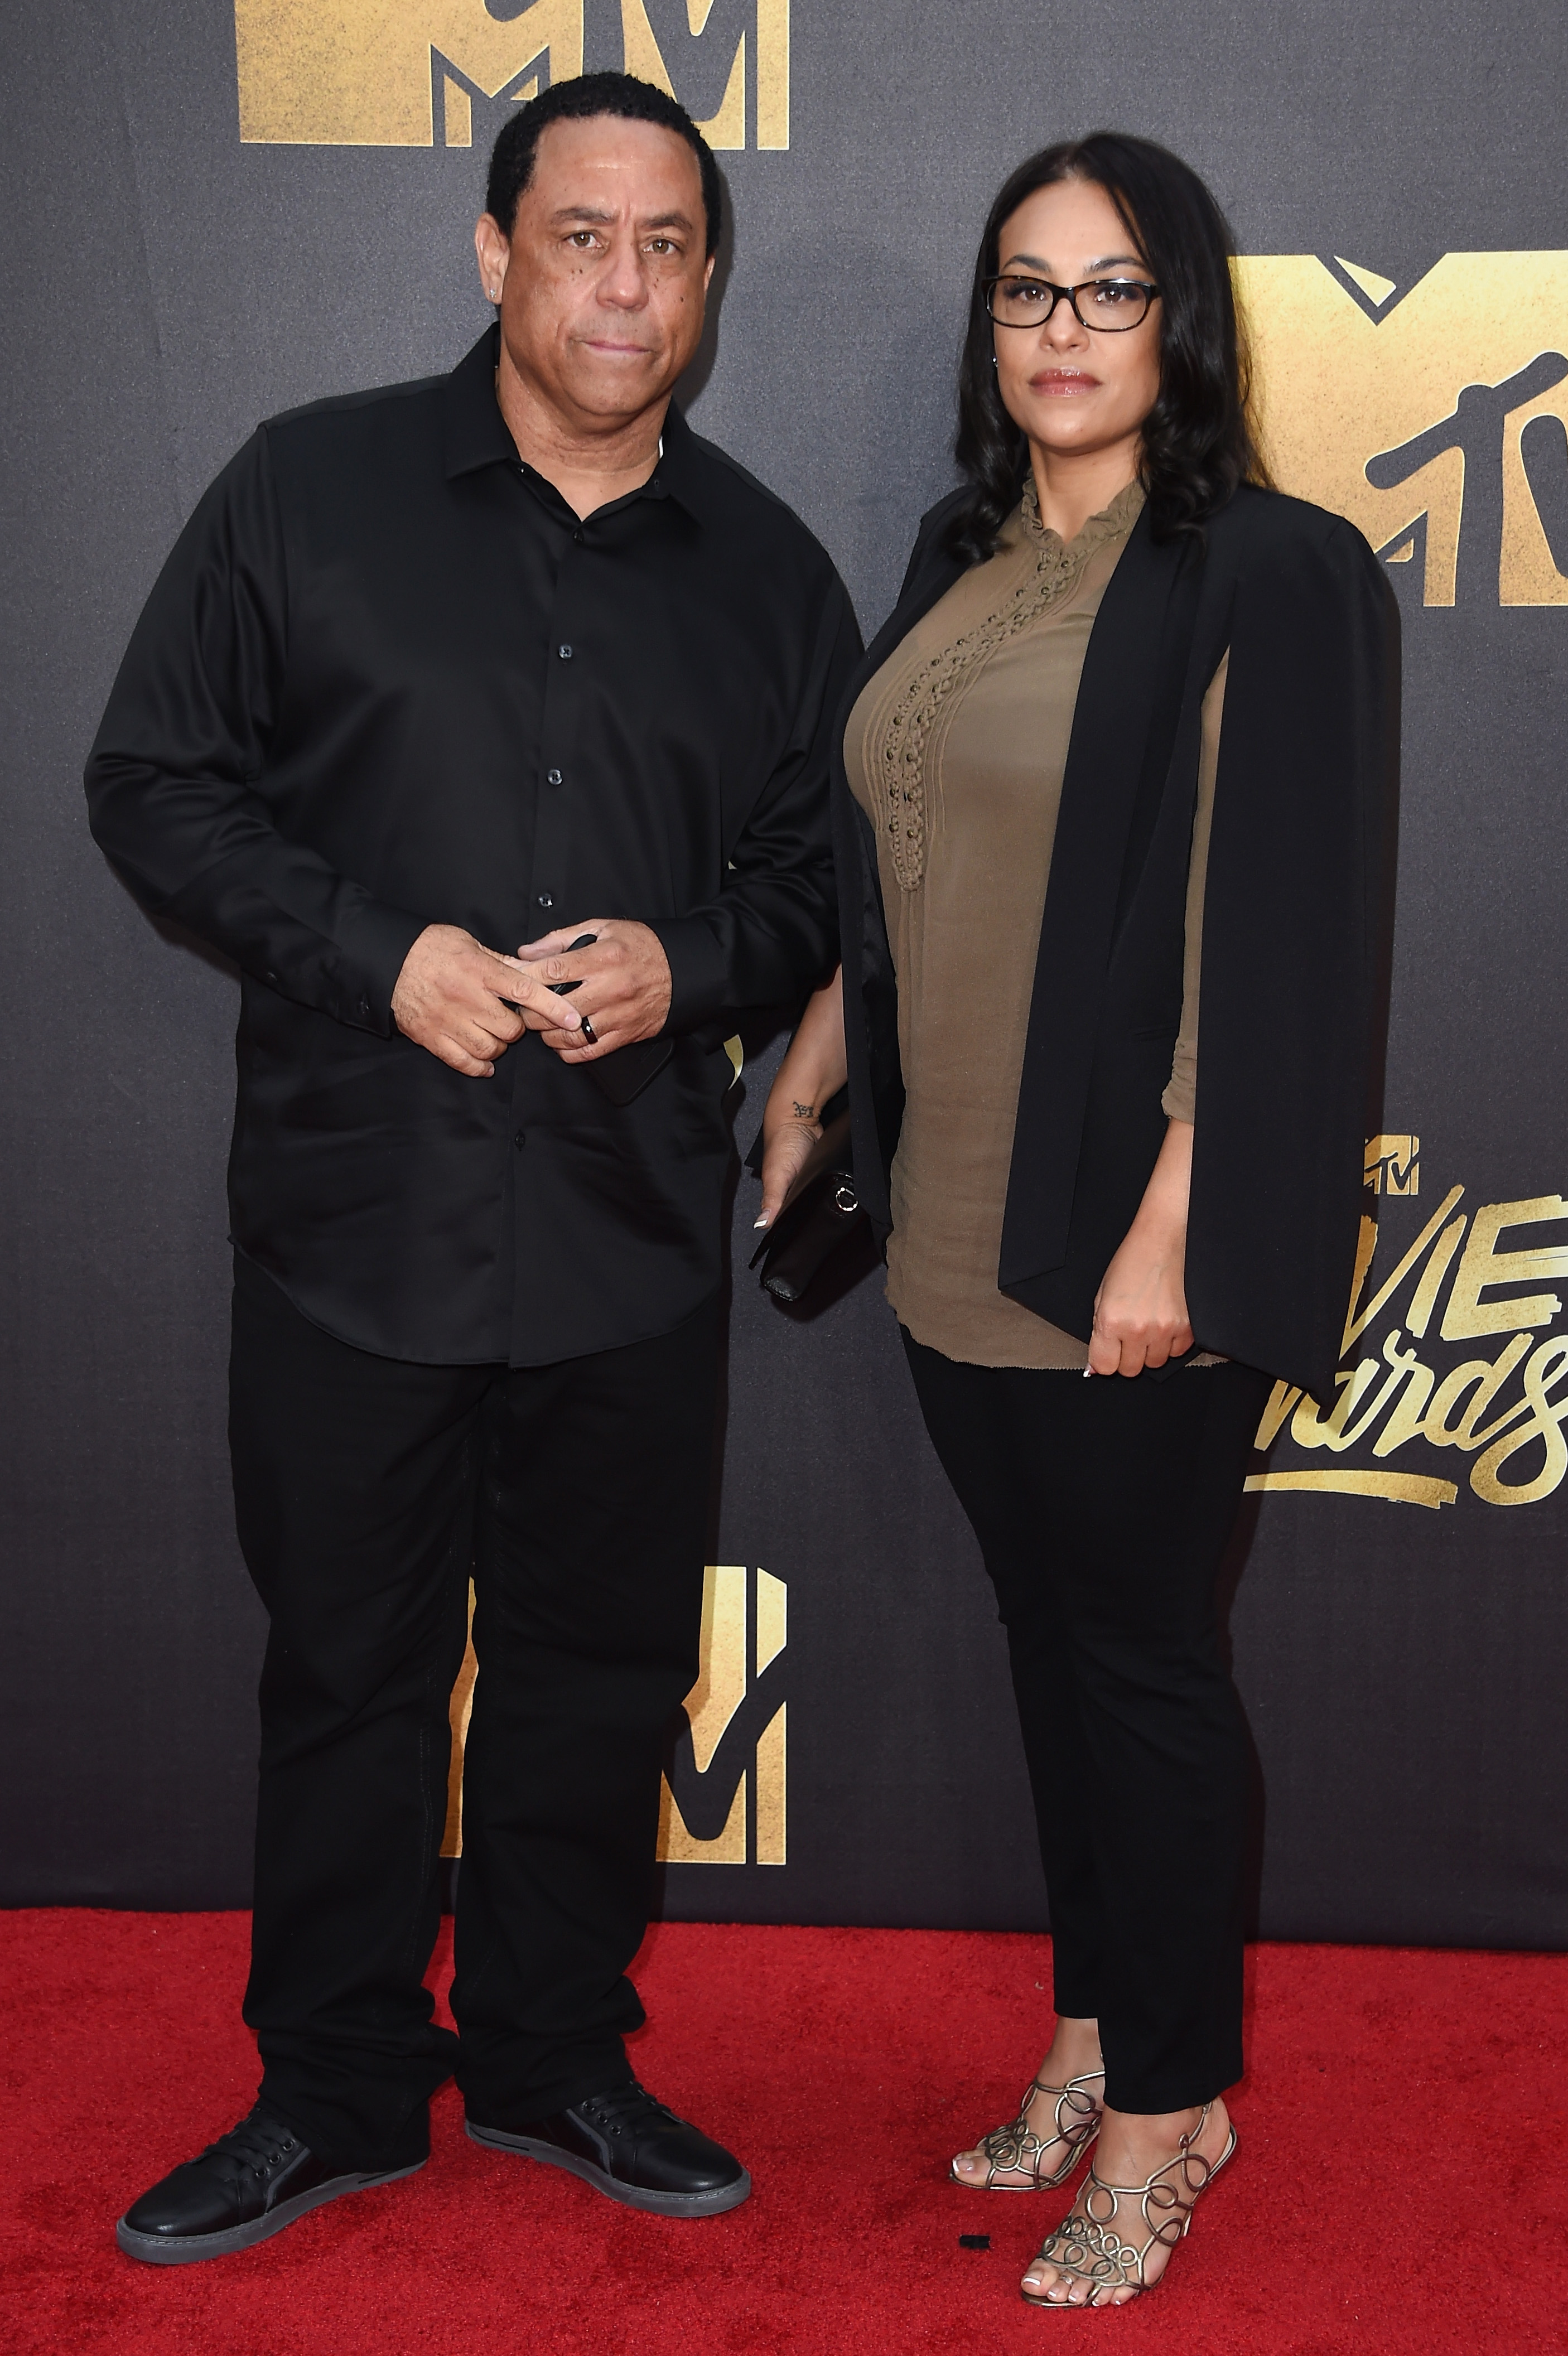 DJ Yella of N.W.A and producer Tomica Woods-Wright attend the 2016 MTV Movie Awards at Warner Bros. Studios on April 9, 2016 in Burbank, Calif.